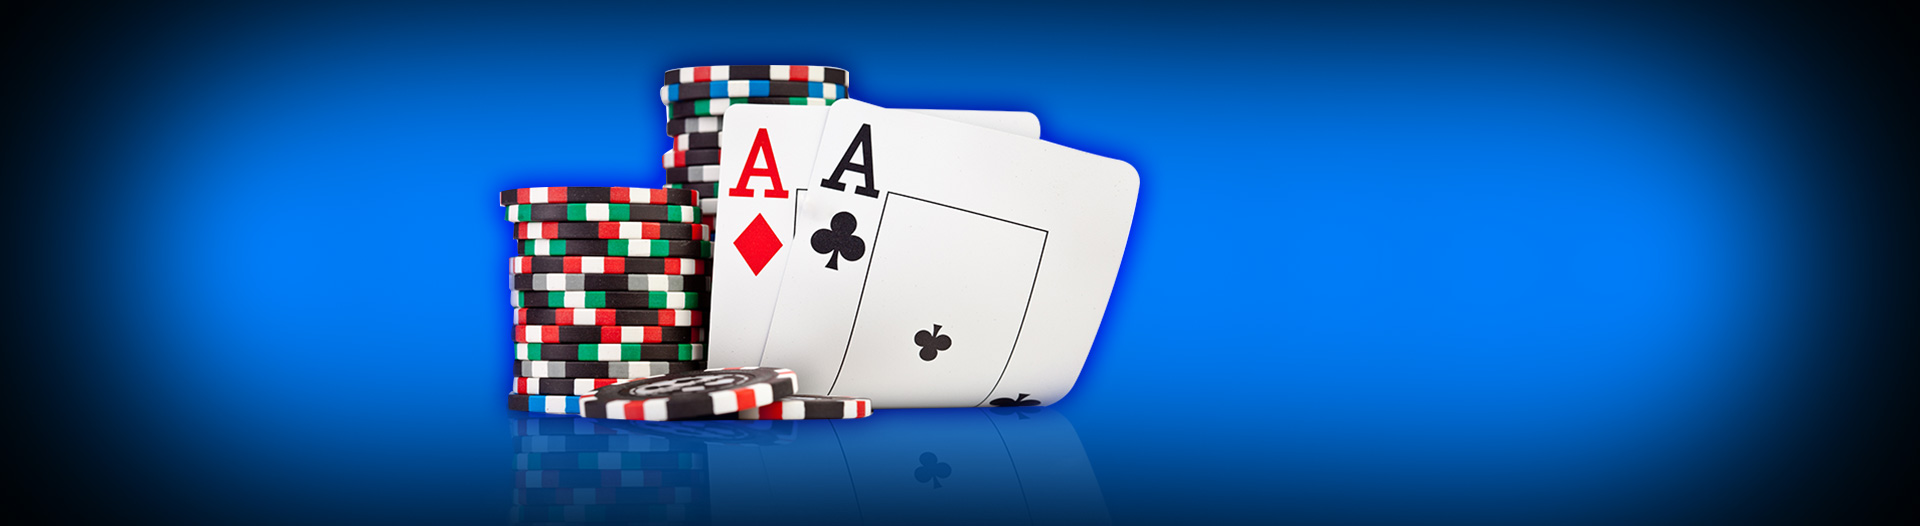 download poker romania